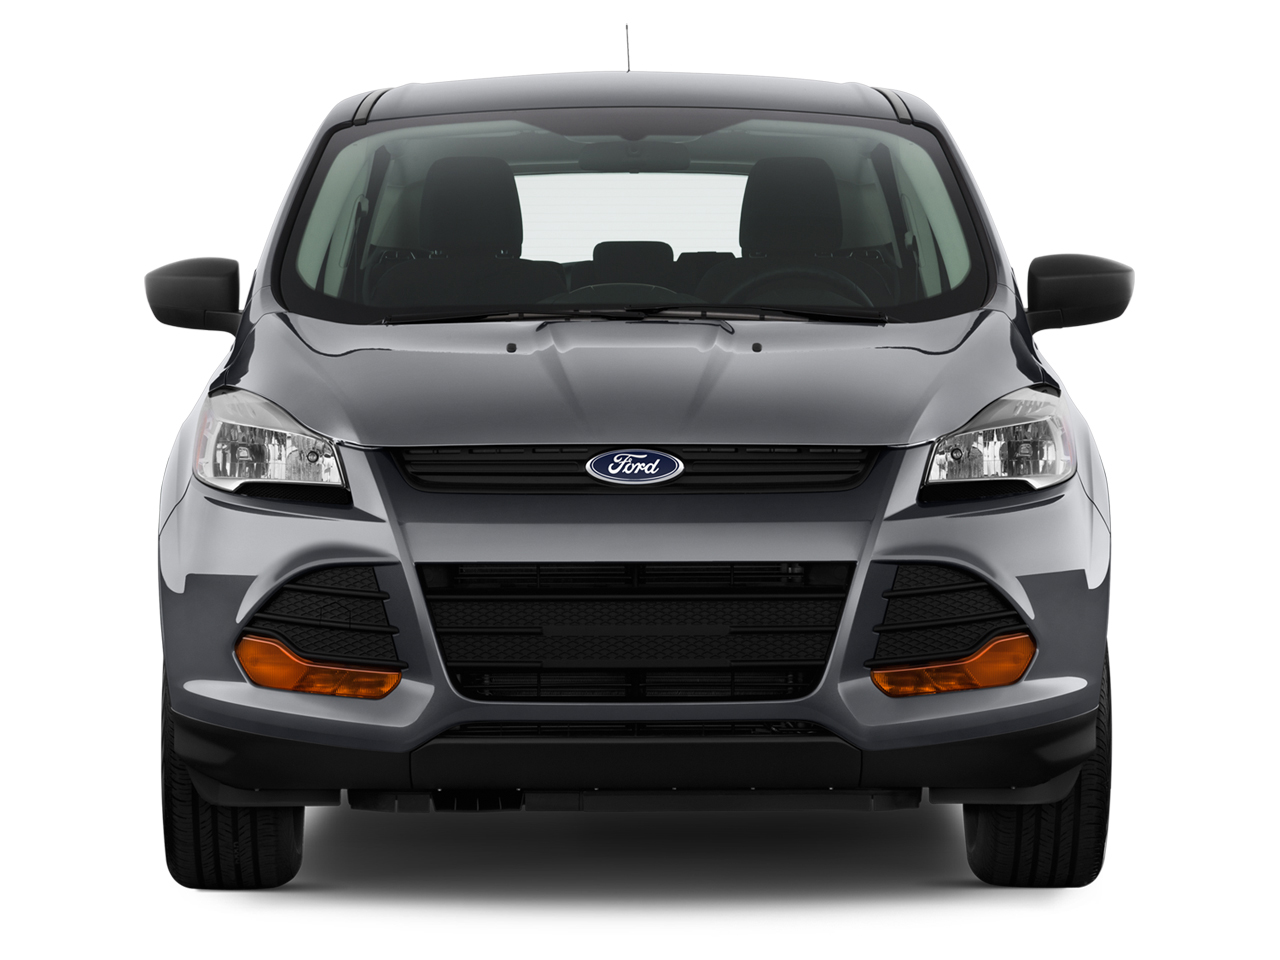 Ford Escape 2019, Saudi Arabia